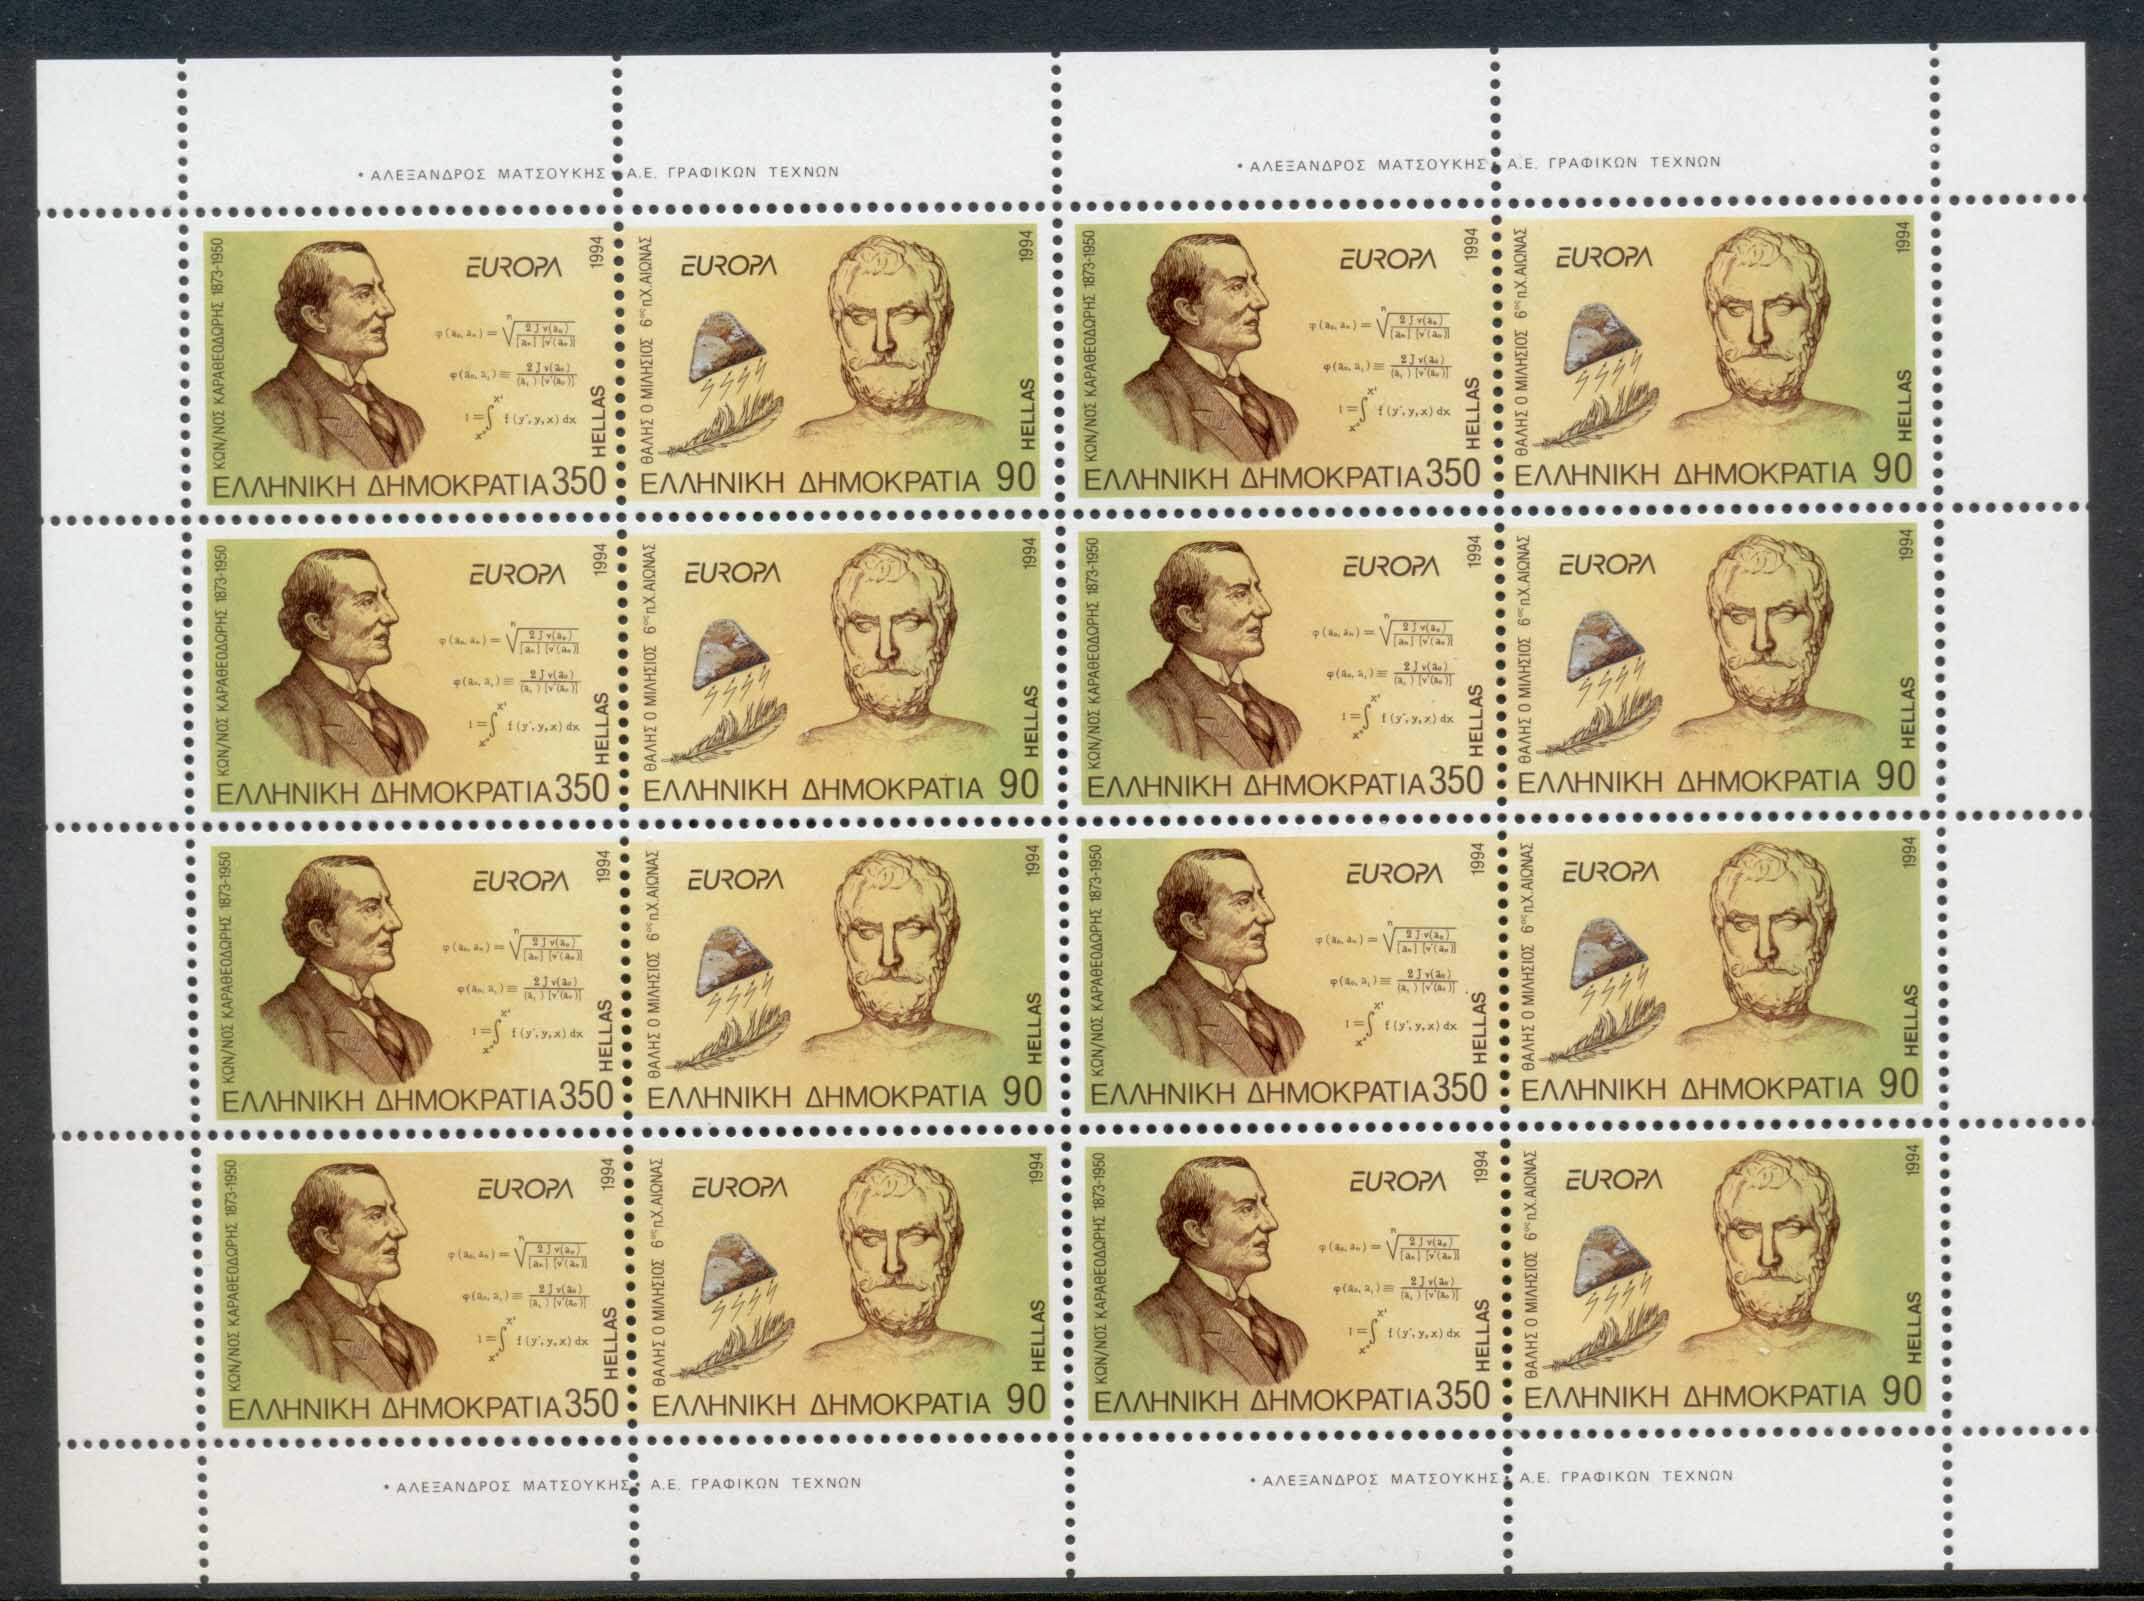 Greece 1994 Europa sheet MUH